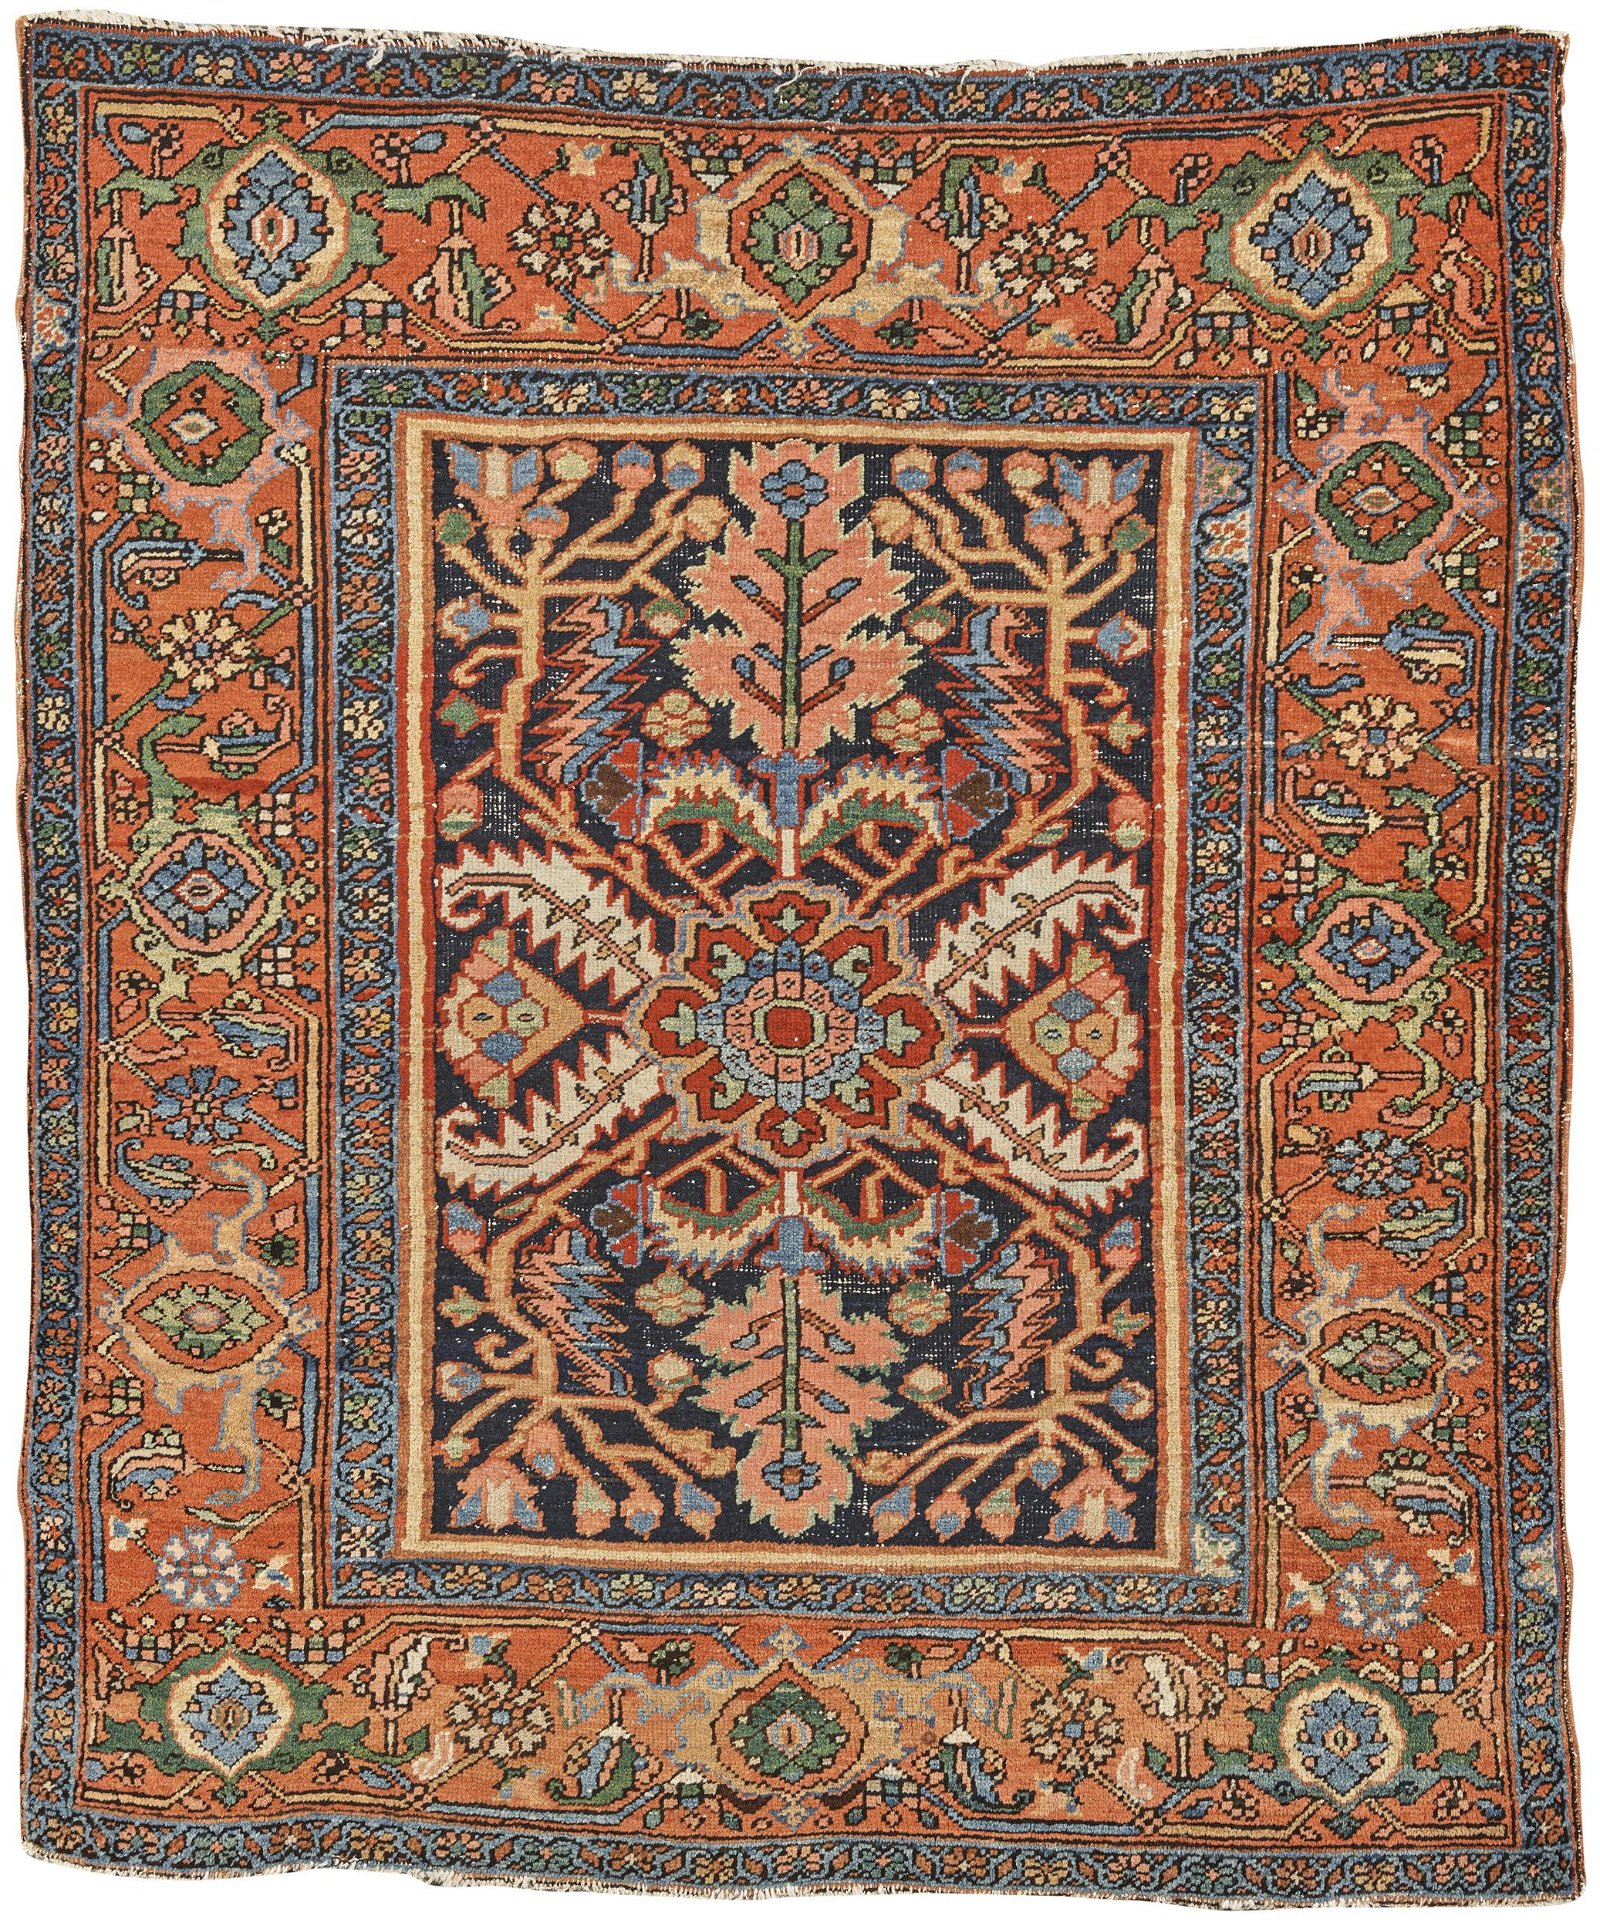 Heriz Rug, Persia, ca. 1910; 5 ft. 8 in. x 4 ft. 9 in.